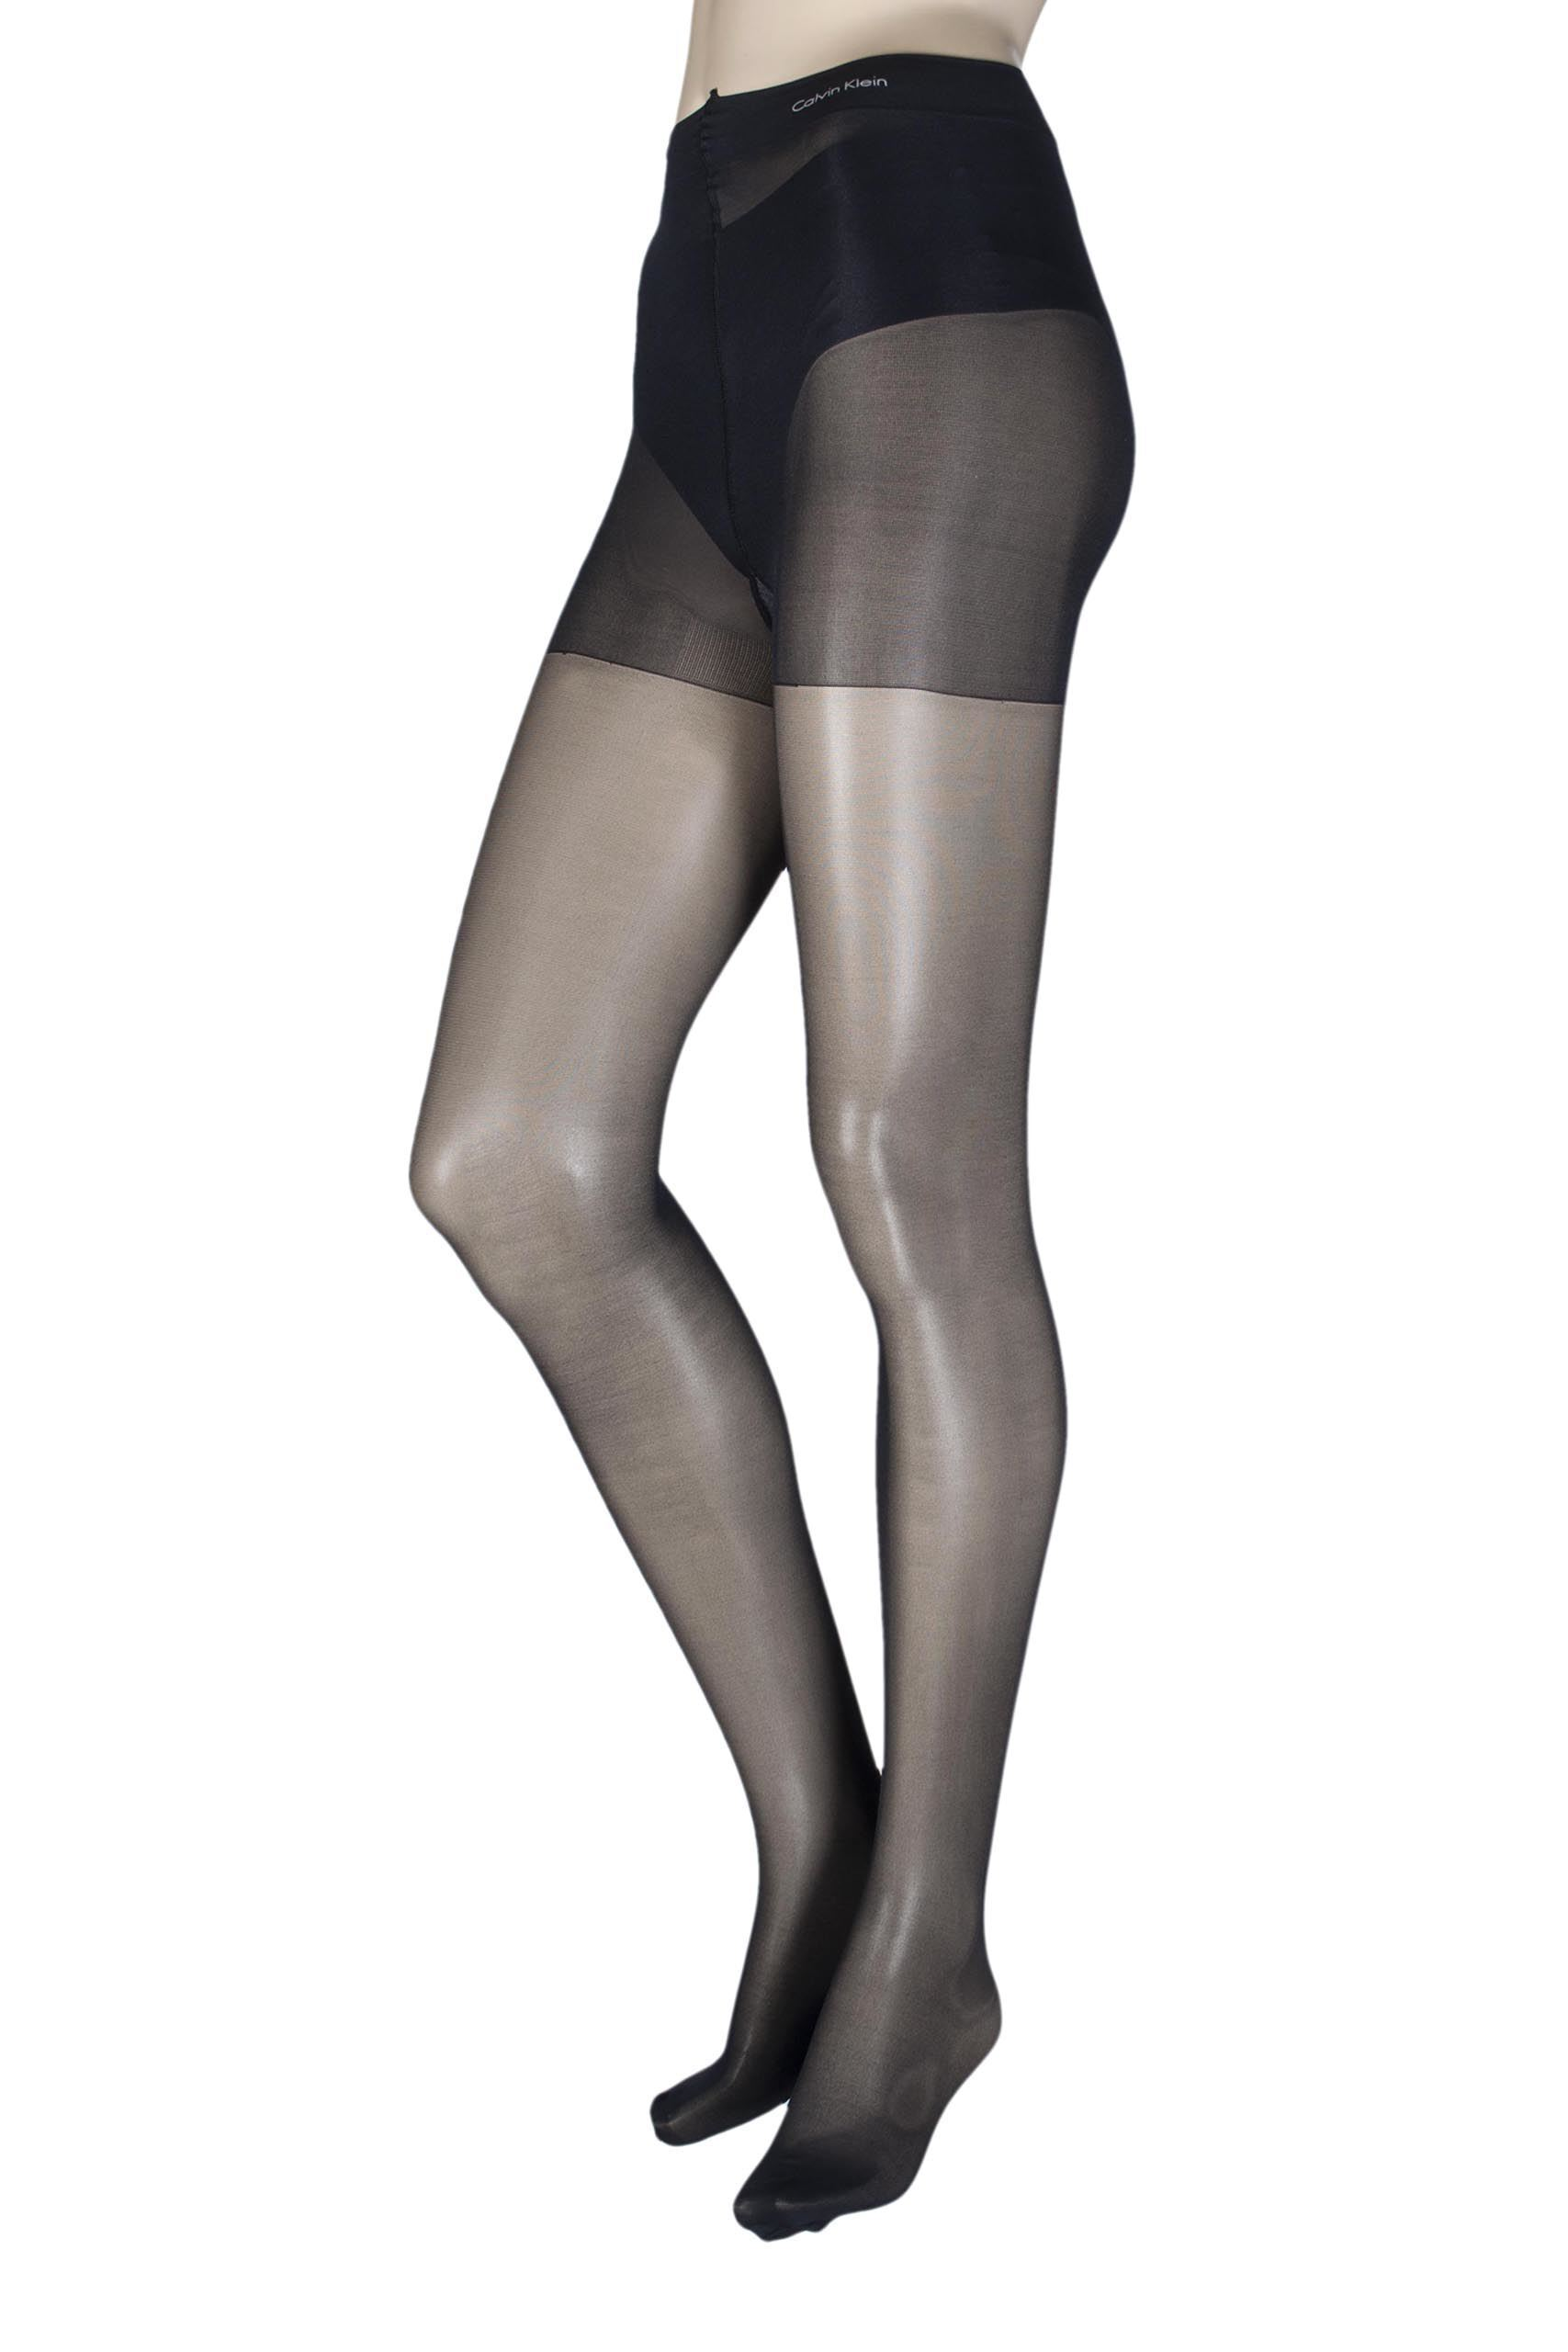 Image of 1 Pair Black Sheer Essentials Active Tights with Control Top Ladies Extra Large - Calvin Klein